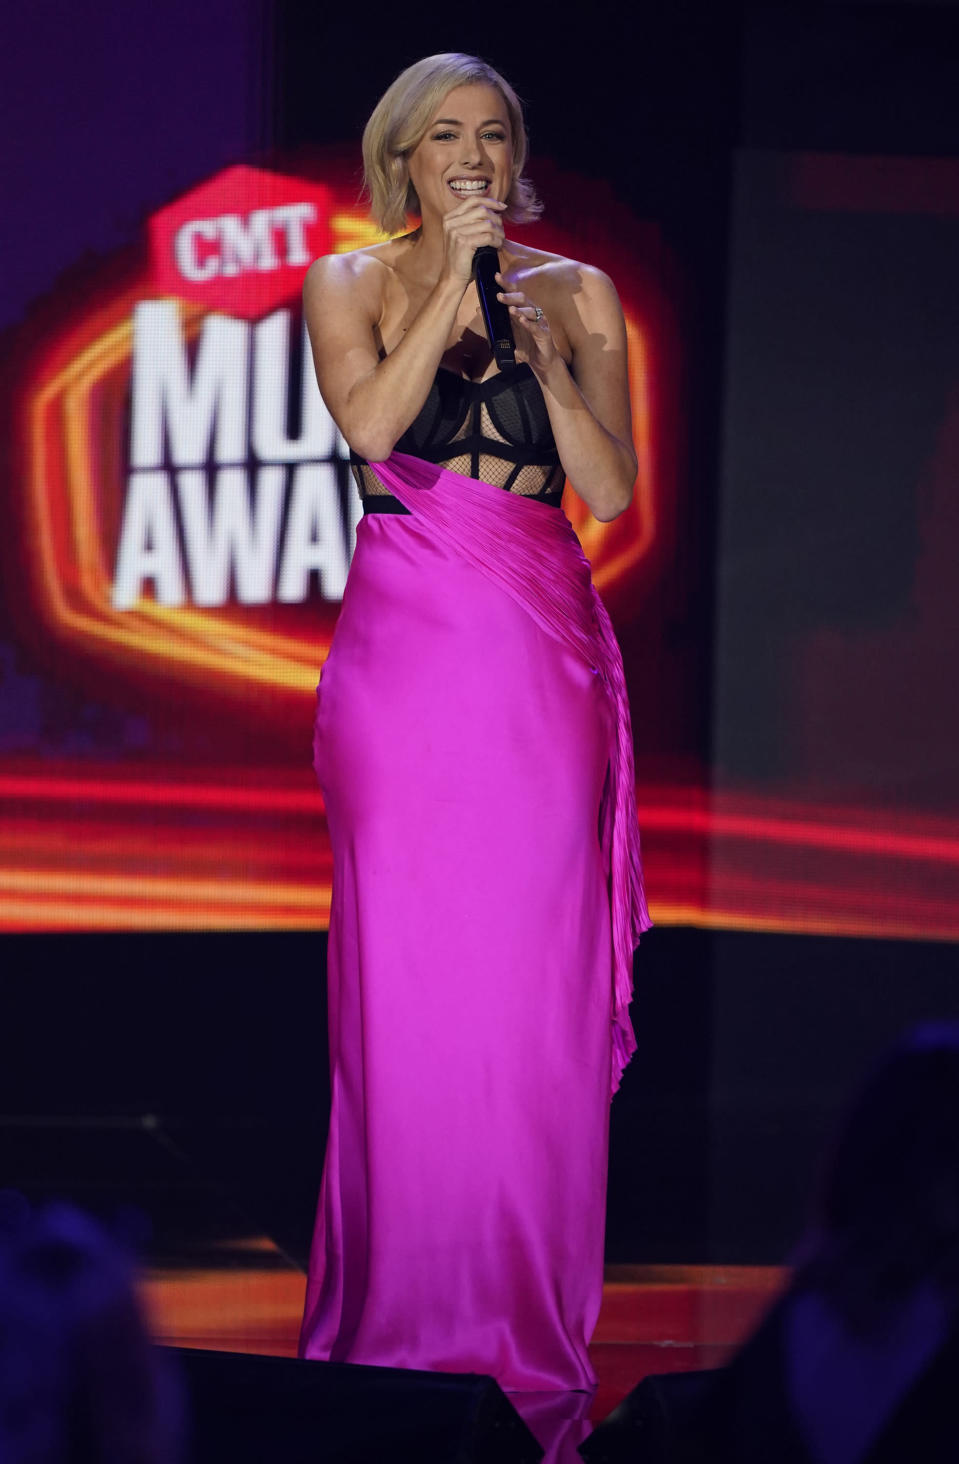 Iliza Shlesinger presents the award for collaborative video of the year at the CMT Music Awards at the Bridgestone Arena on Wednesday, June 9, 2021, in Nashville, Tenn. (AP Photo/Mark Humphrey)